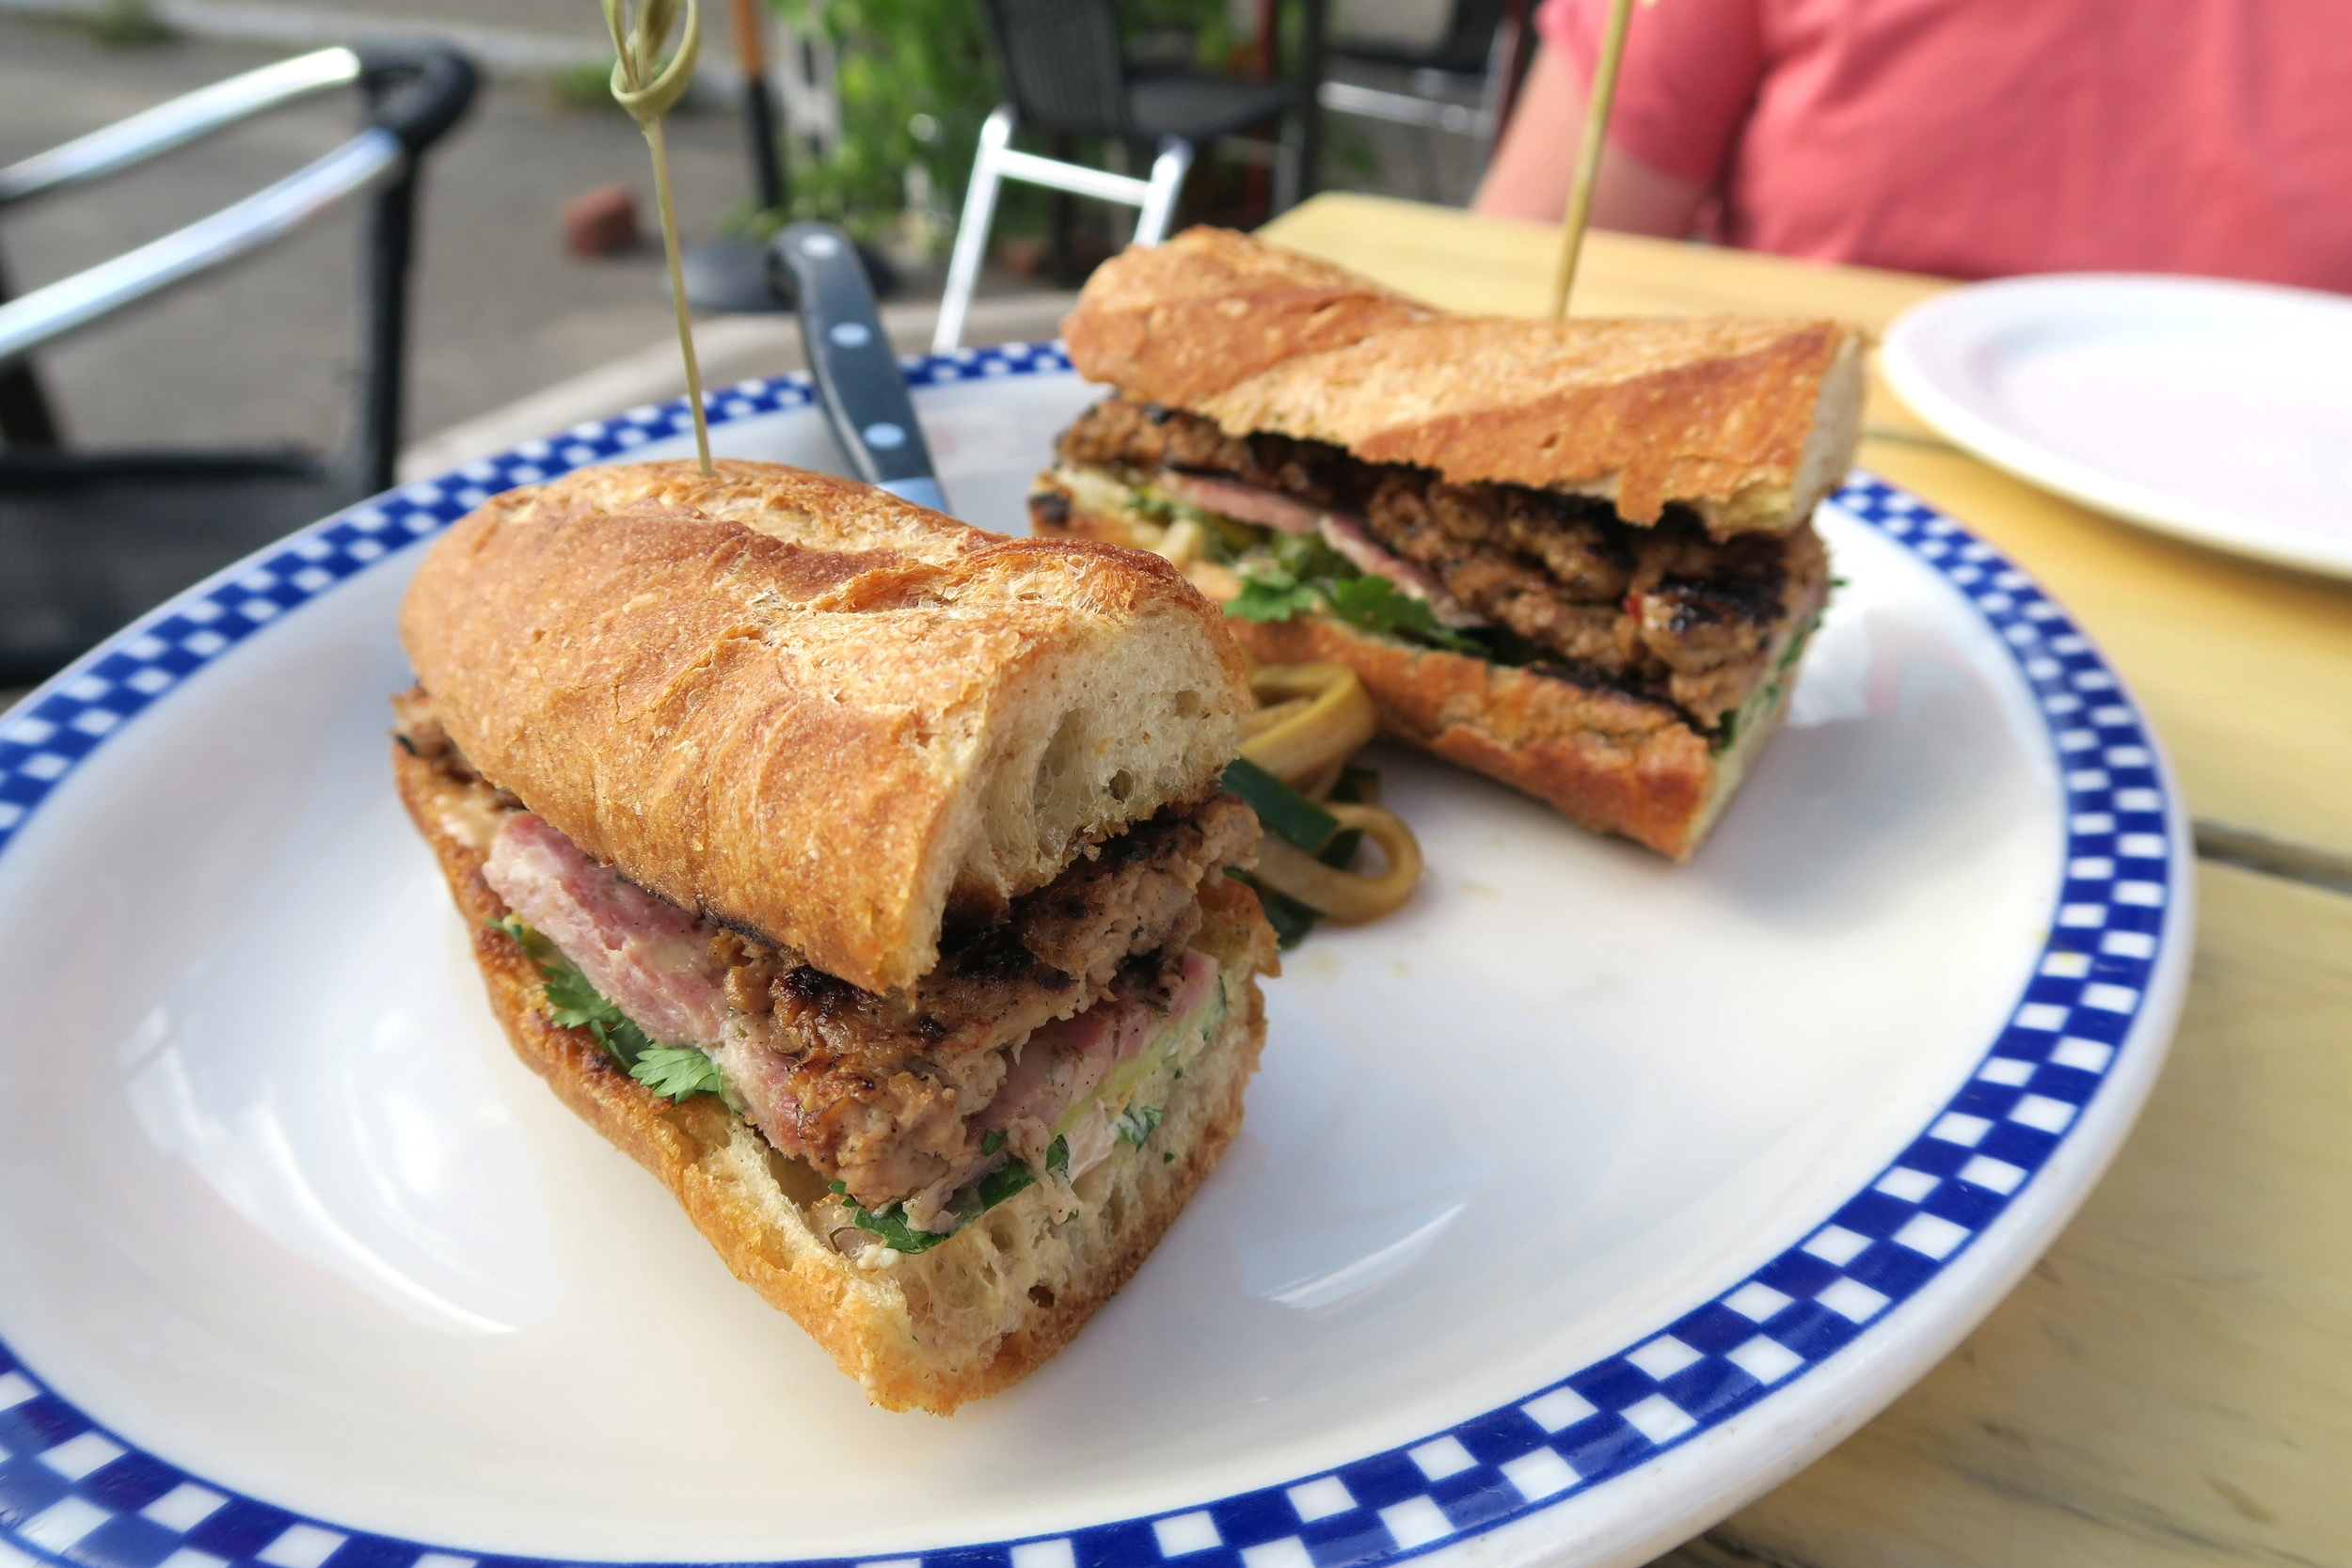 Cure's Banh Mi is served on a toasted baguette from Flour City and made with pork sausage, pate, pickled vegetables, a house made spice mayo, with a cucumber salad $16